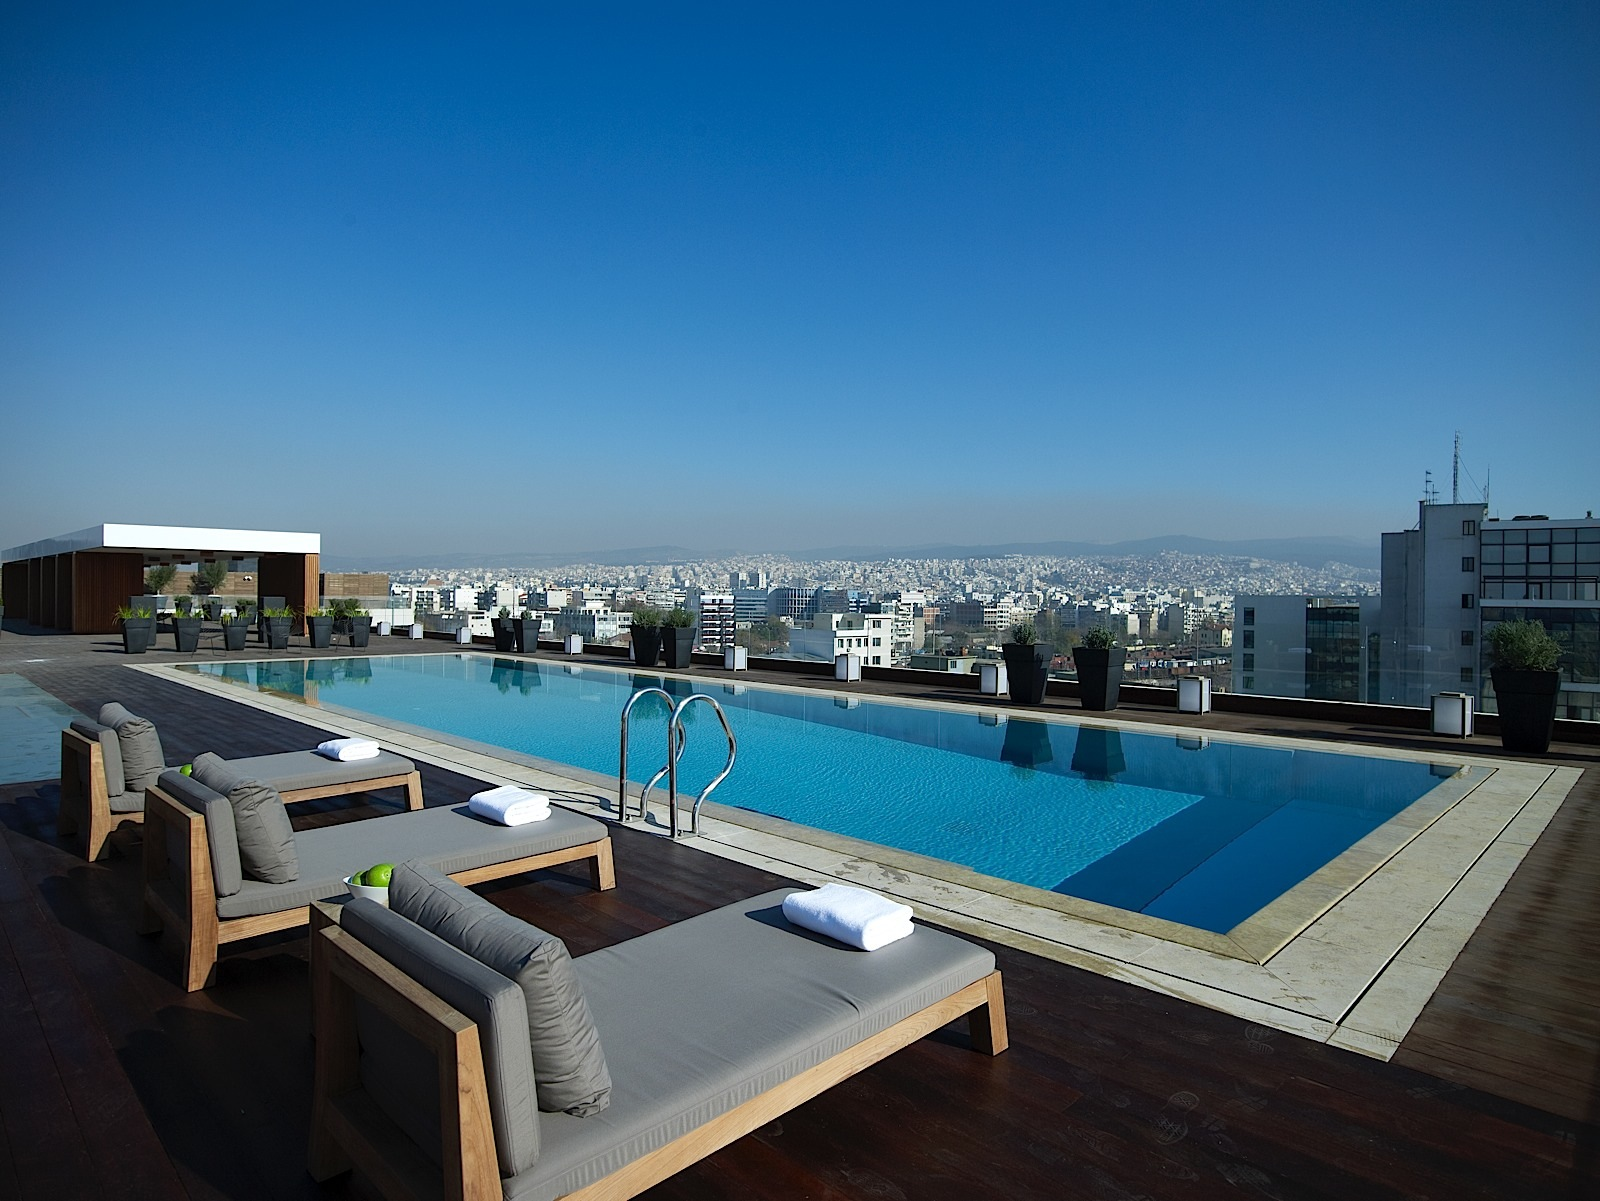 Pdp Page Emporium Voyage Membership Portal - The-met-hotel-in-thessaloniki-greece-is-for-the-elite